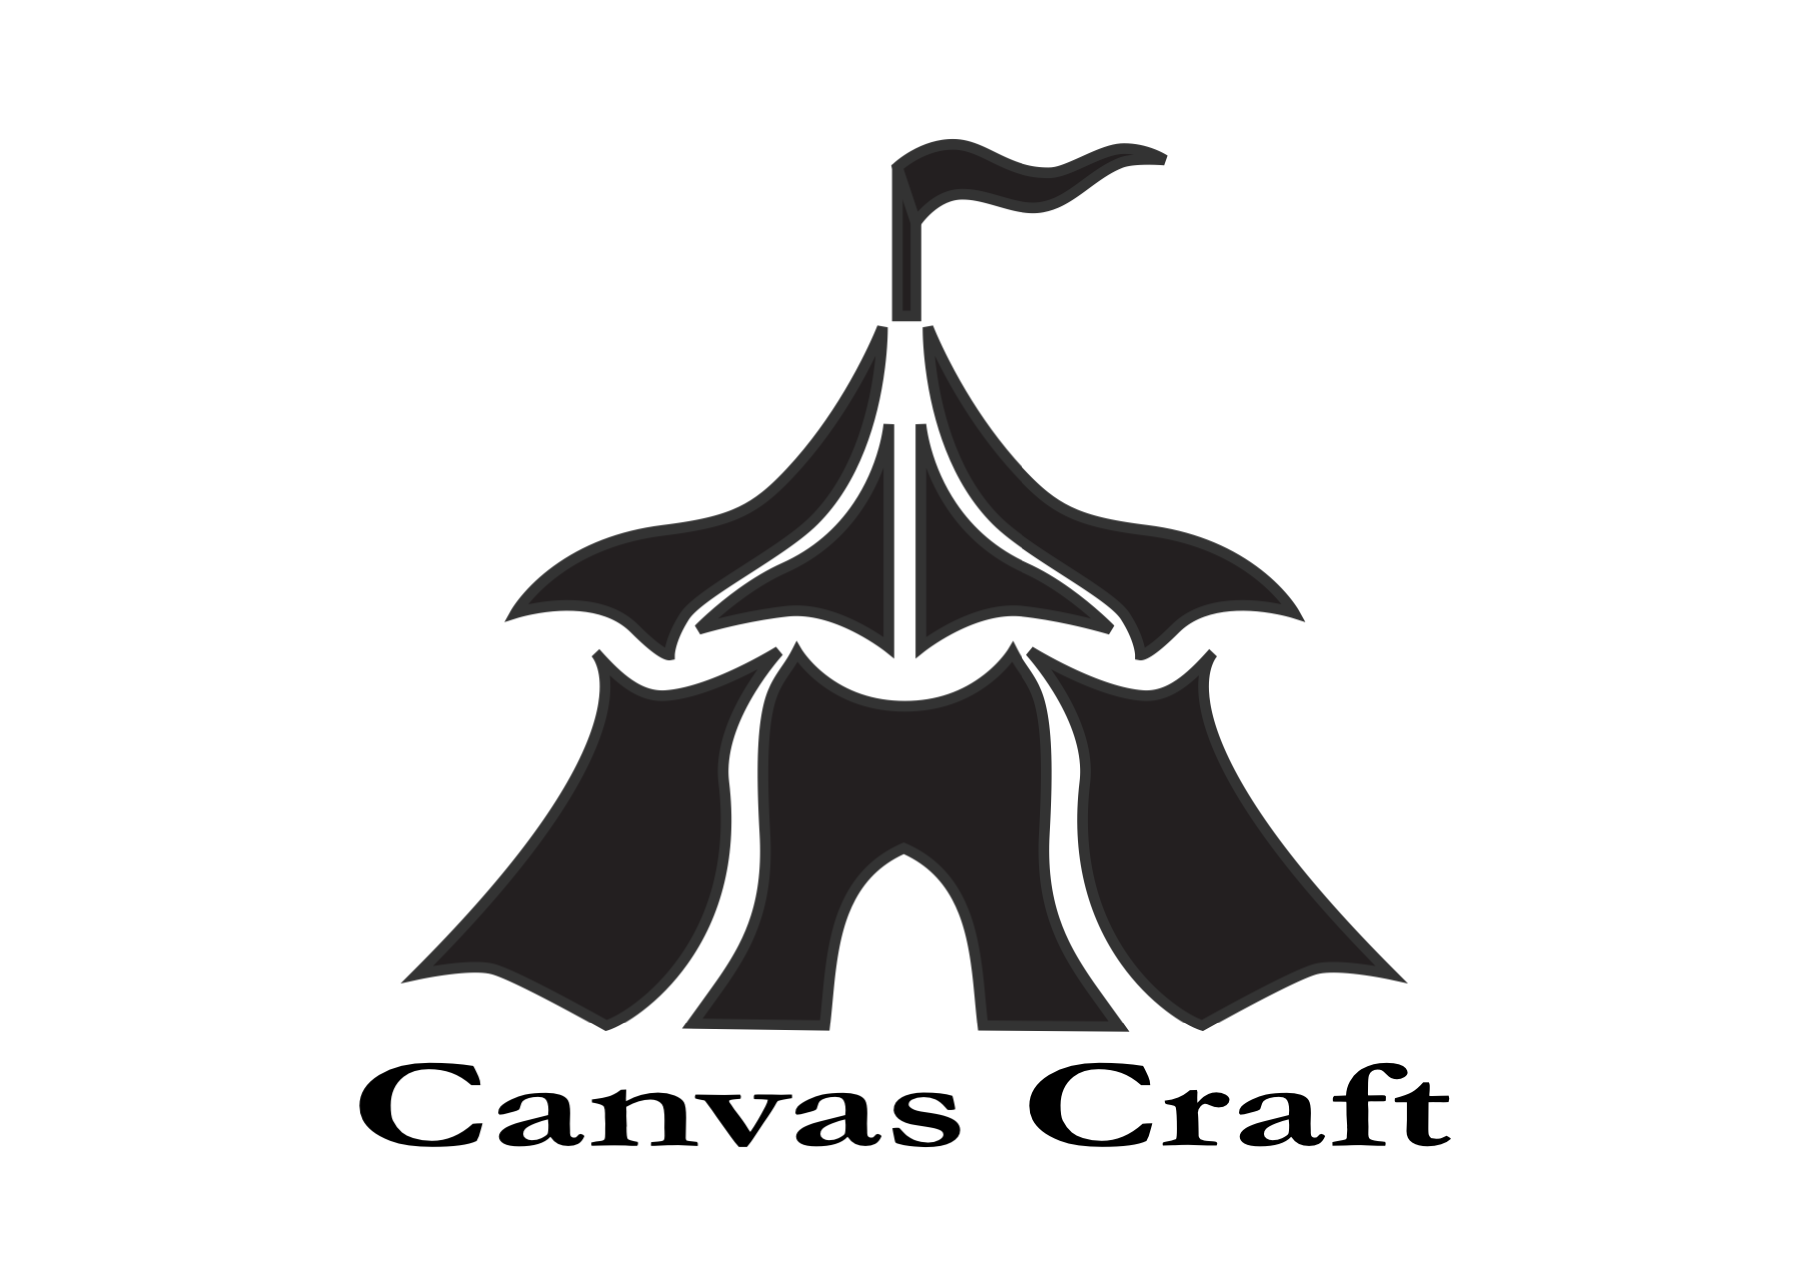 Canvas Craft